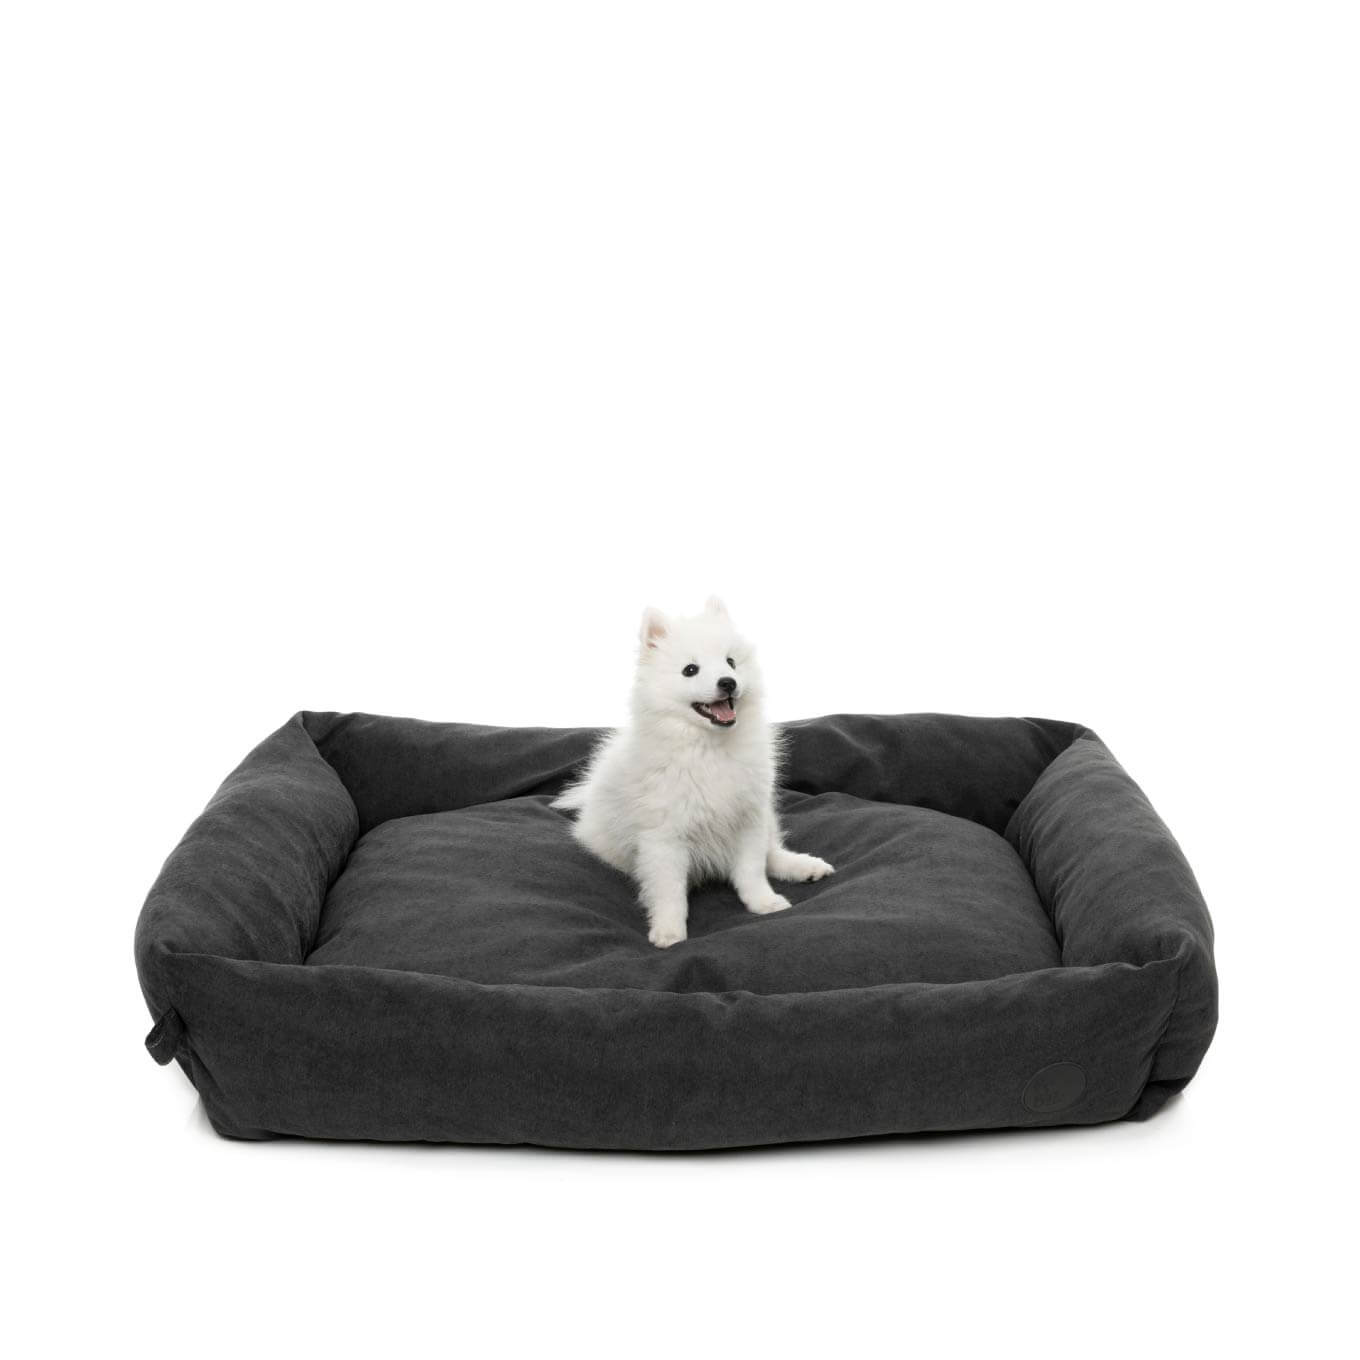 FuzzYard The Lounge Bed in Charcoal - Shop Vanillapup Online Pet Shop